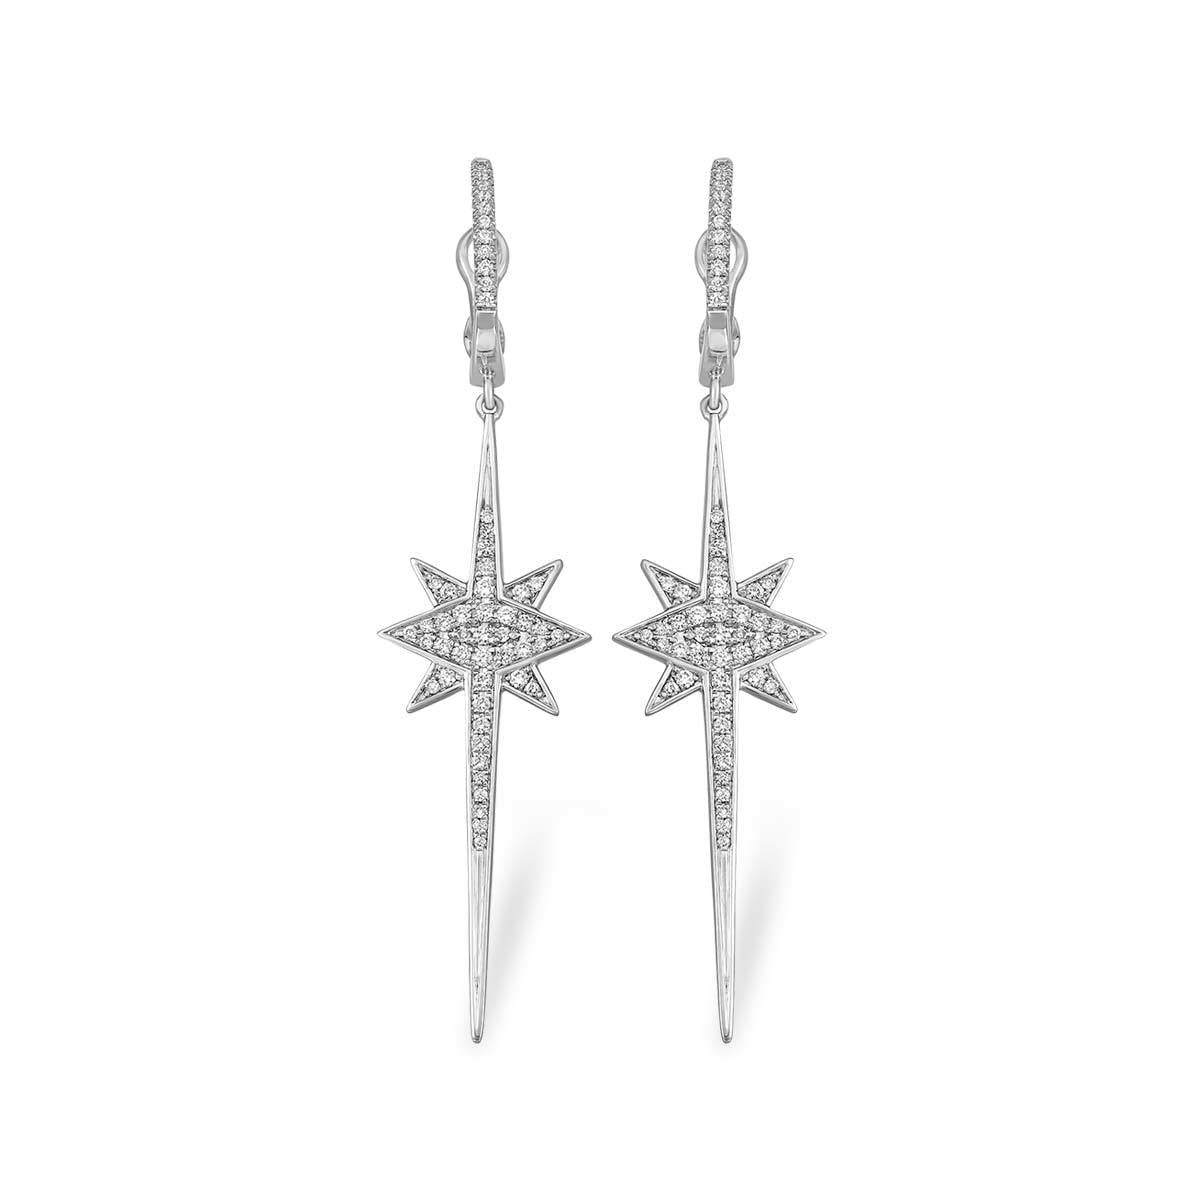 Shooting Star Earrings - Serena Williams Jewelry